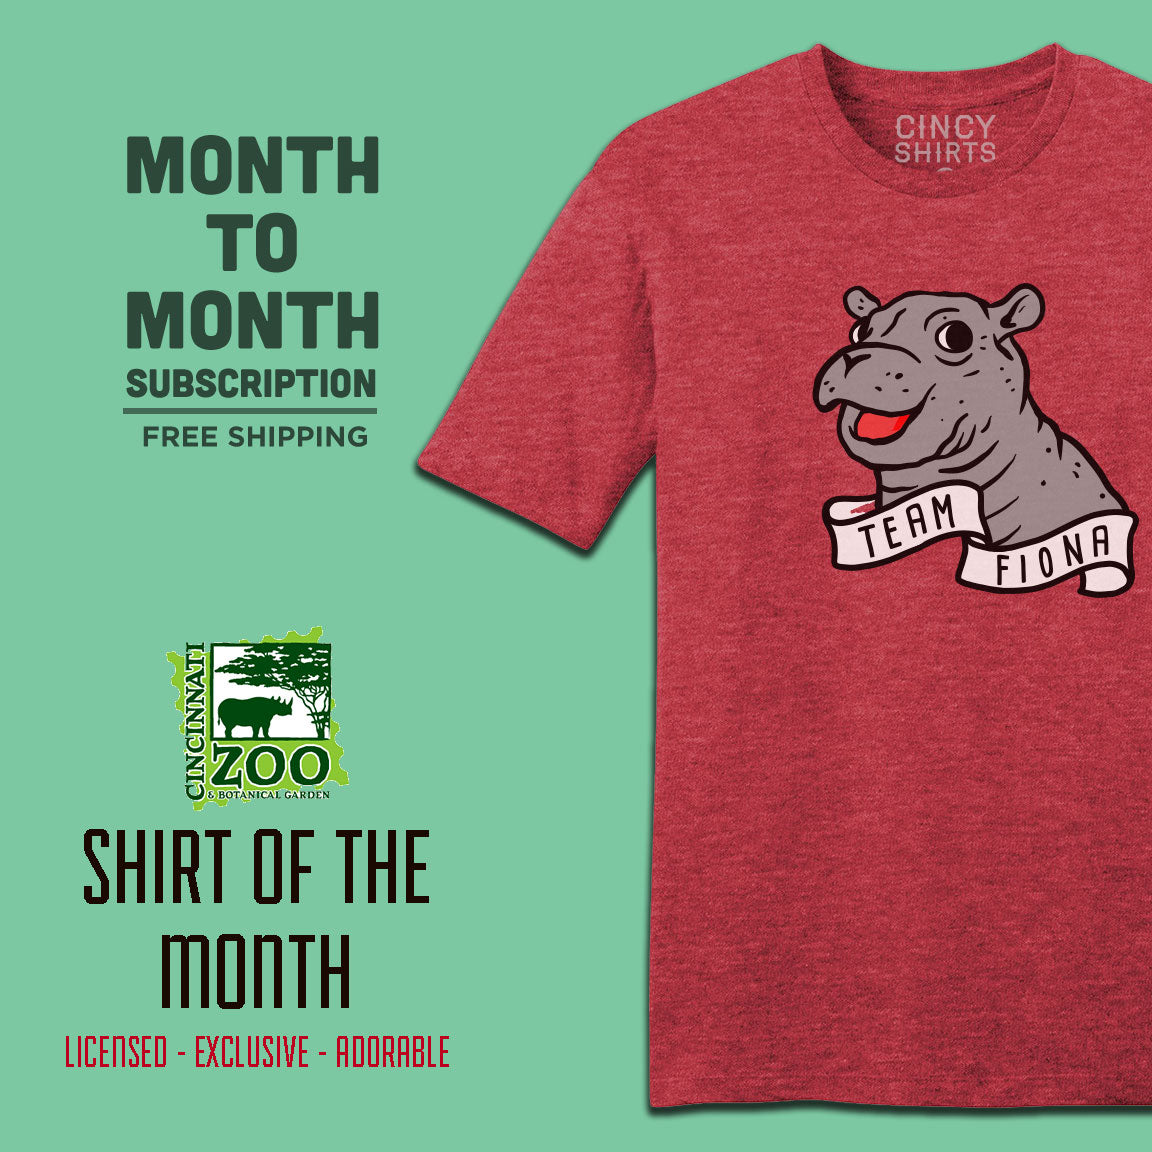 Cincinnati Zoo Shirt of the Month - Cincy Shirts